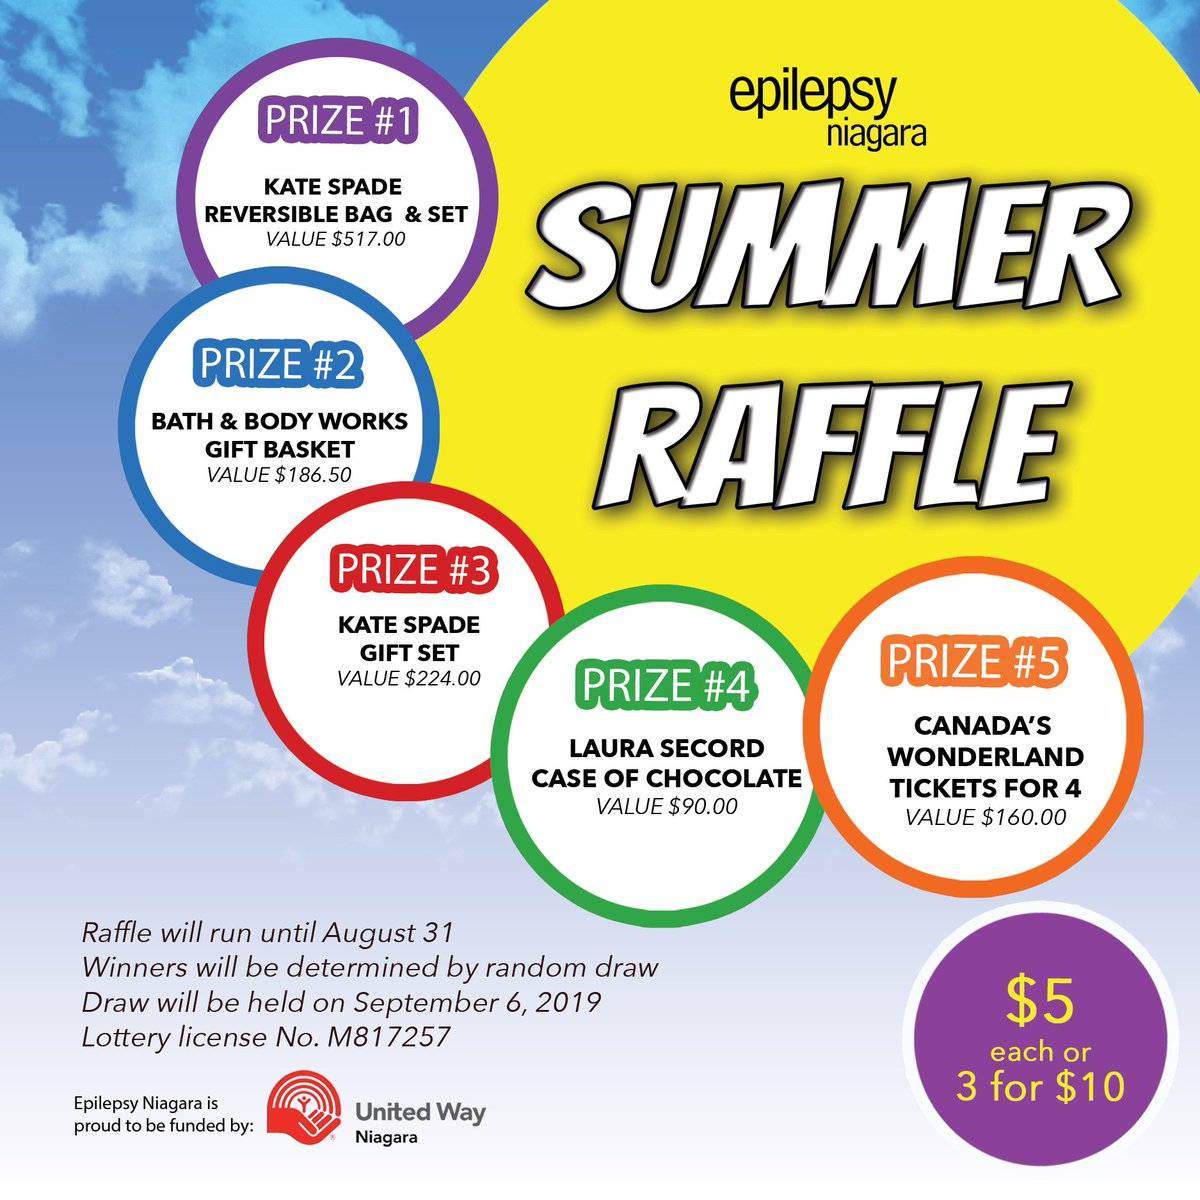 This is one of our best summer raffles yet! Contact us to purchase tickets - info@epilepsyniagara.org  #raffle #summer #amazingprizes #iwishicouldbuytickets #winning #epilepsy #niagara #niagarafalls #canada https://t.co/94X22T9XKs